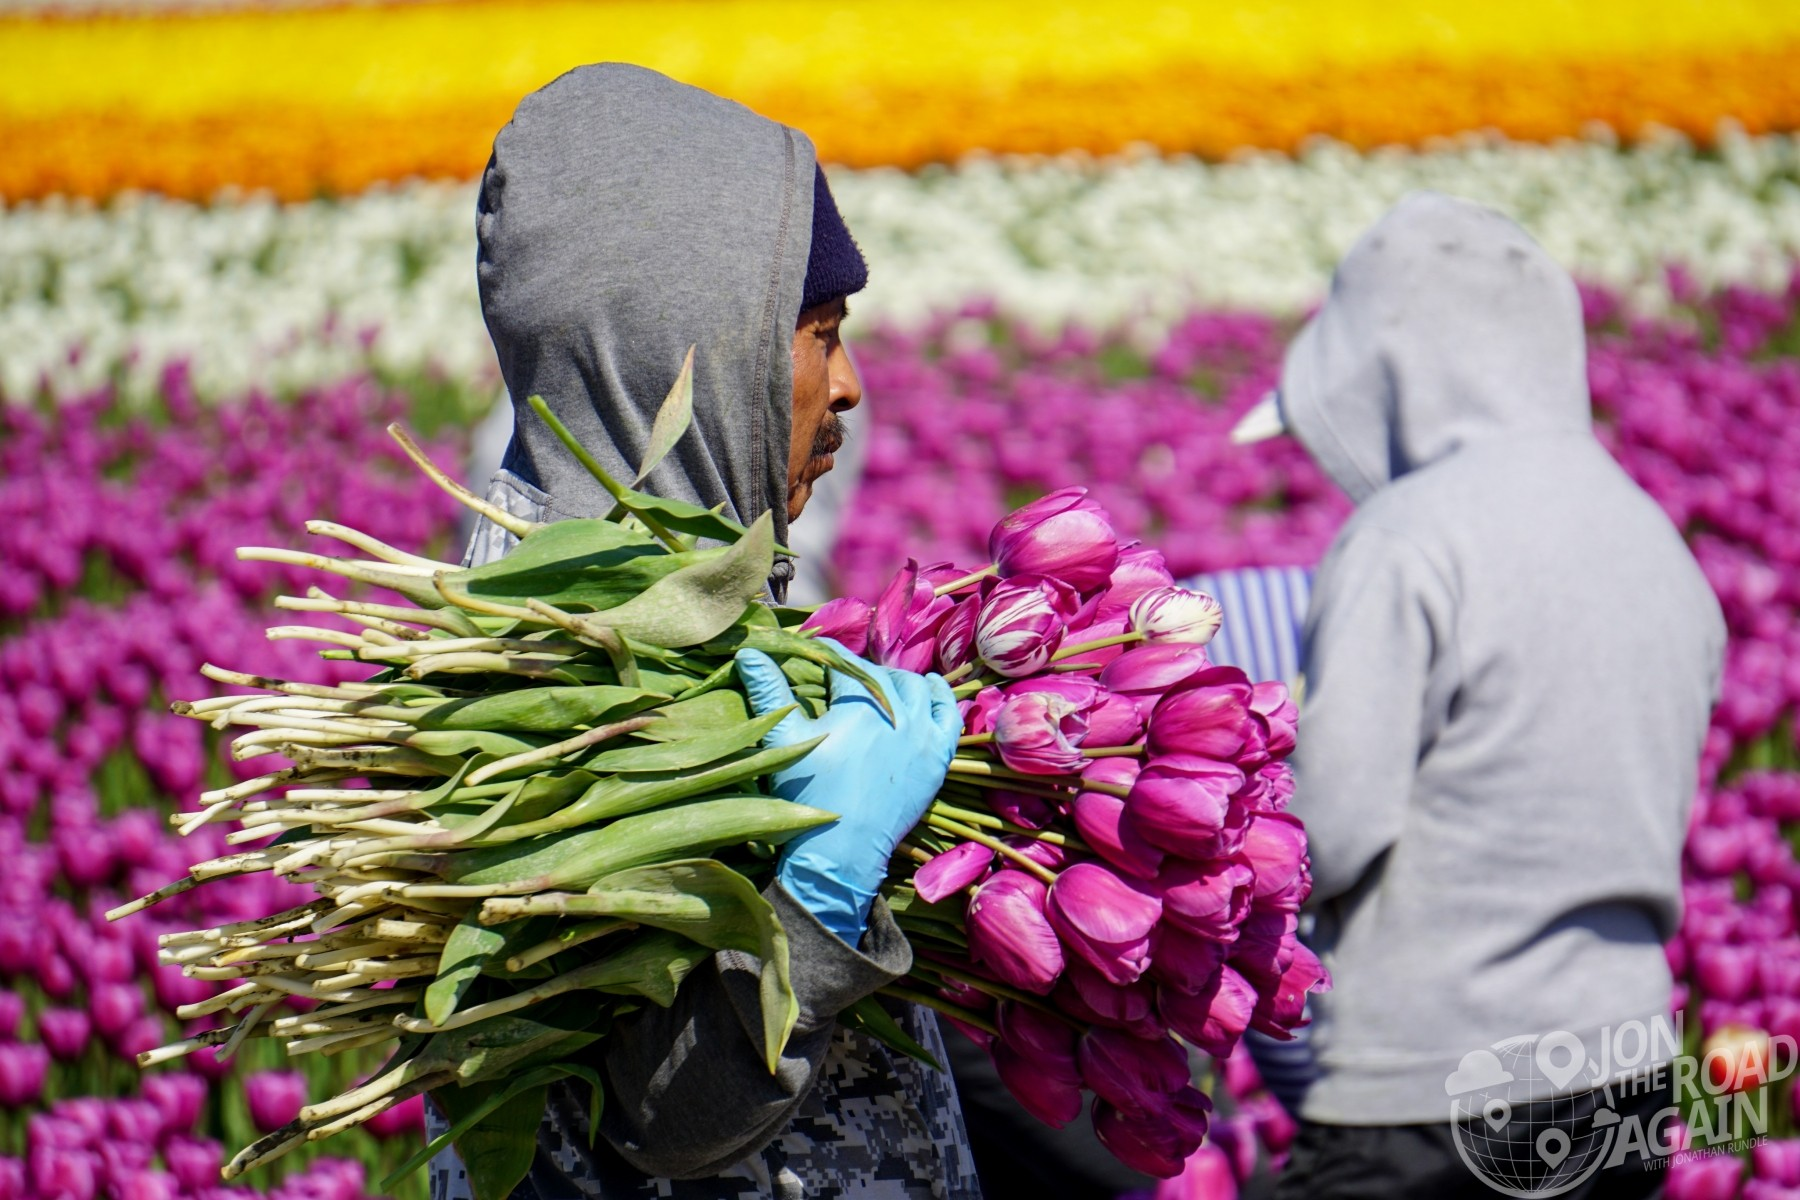 Election Day - hard working flower pickers